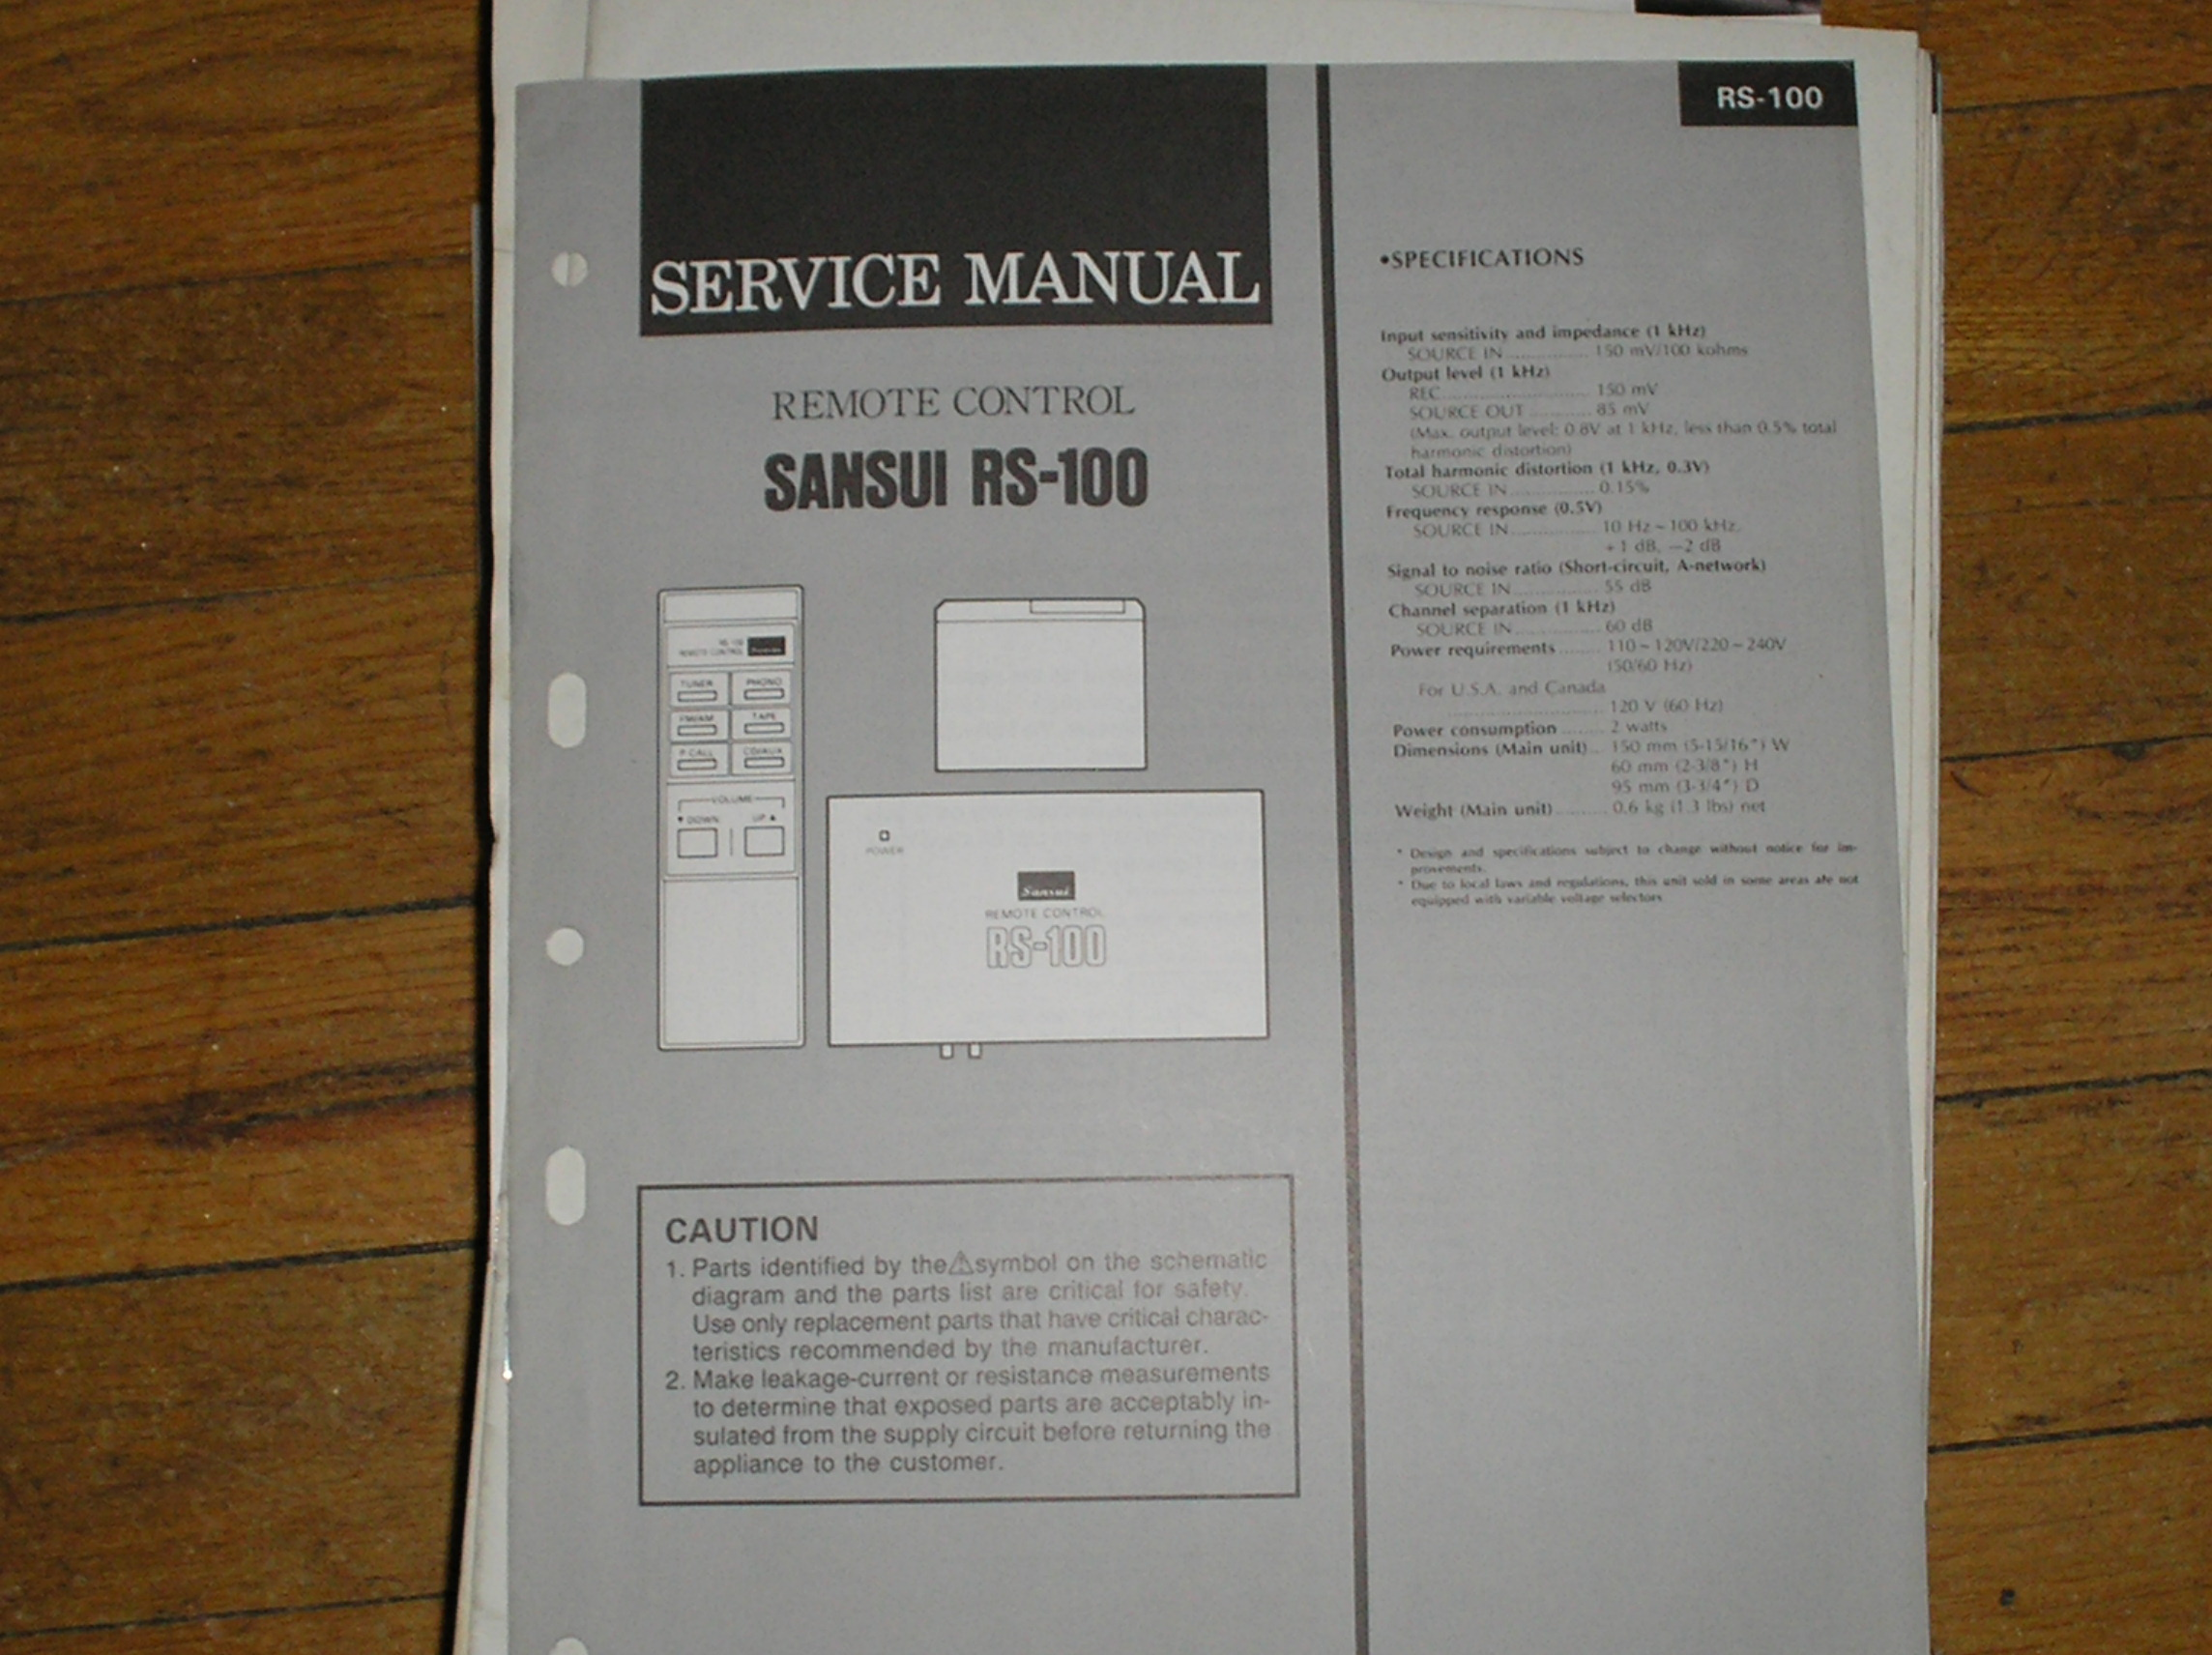 RS-100 Remote Control System Service Manual